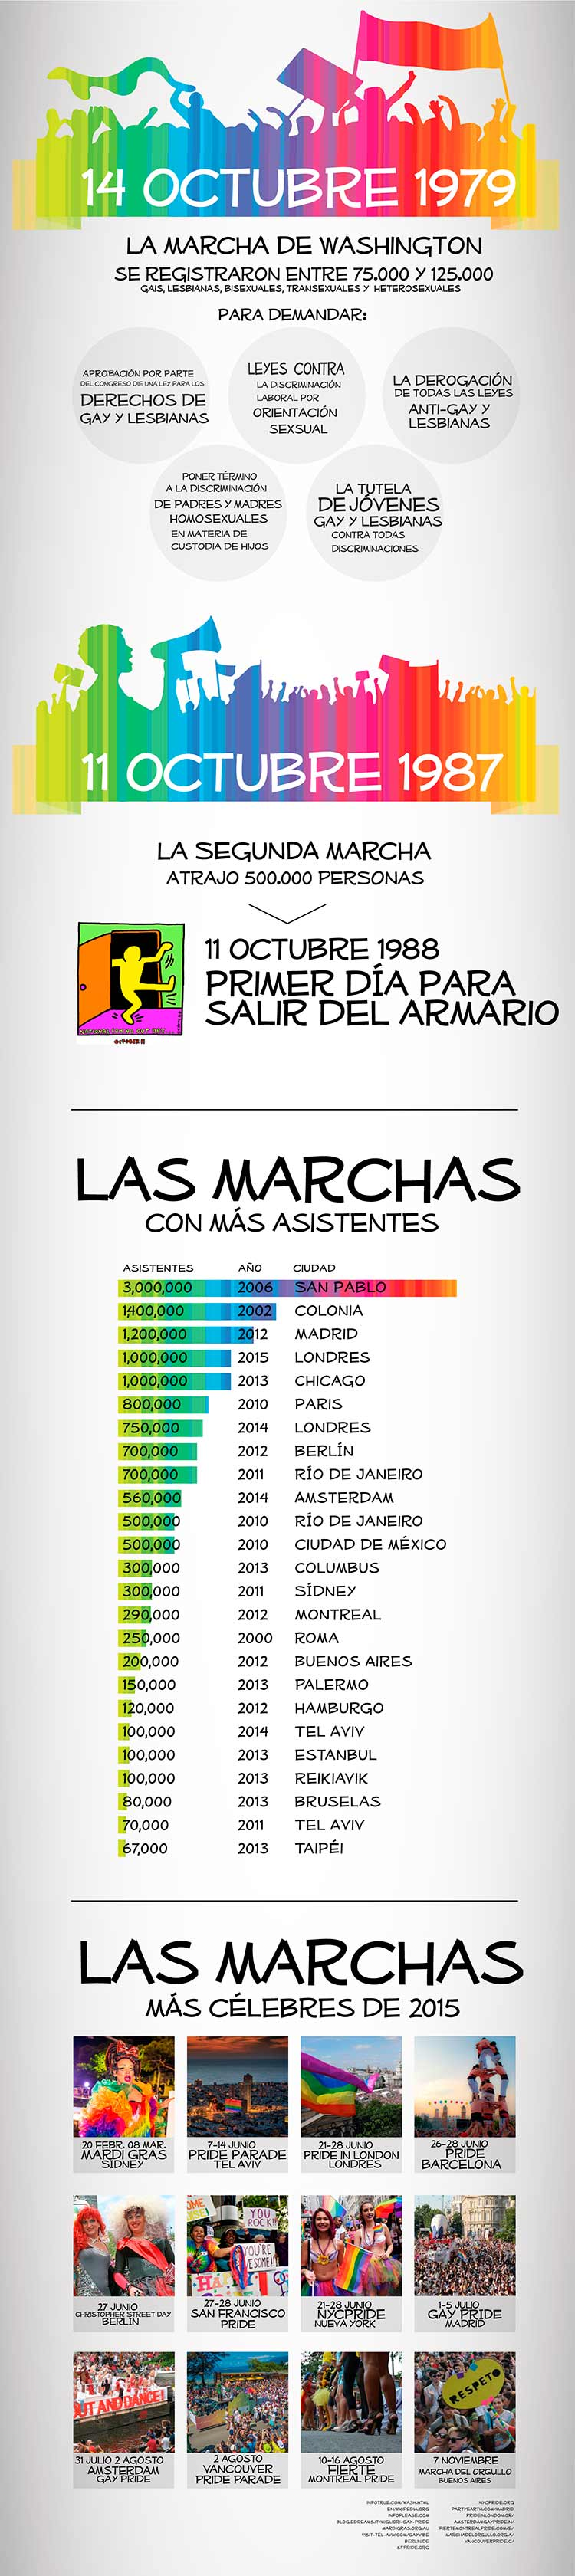 LGBT-marchas